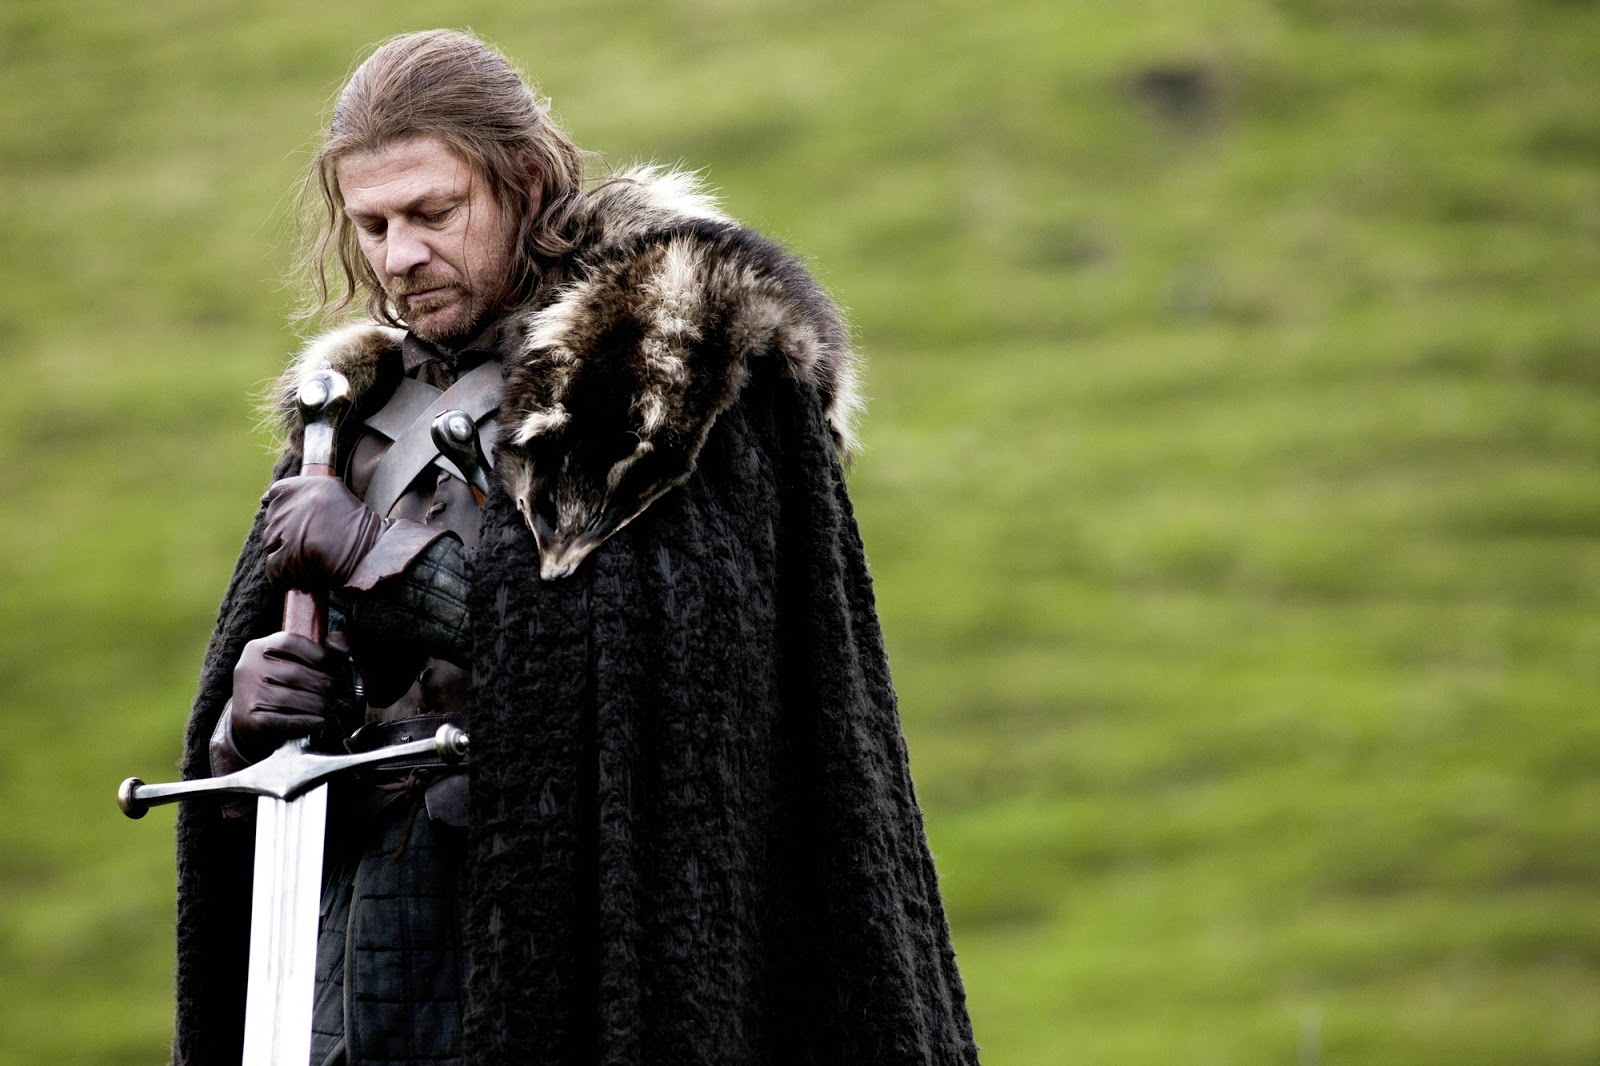 Sean Bean as Lord Eddard Stark in HBO's Game of Thrones